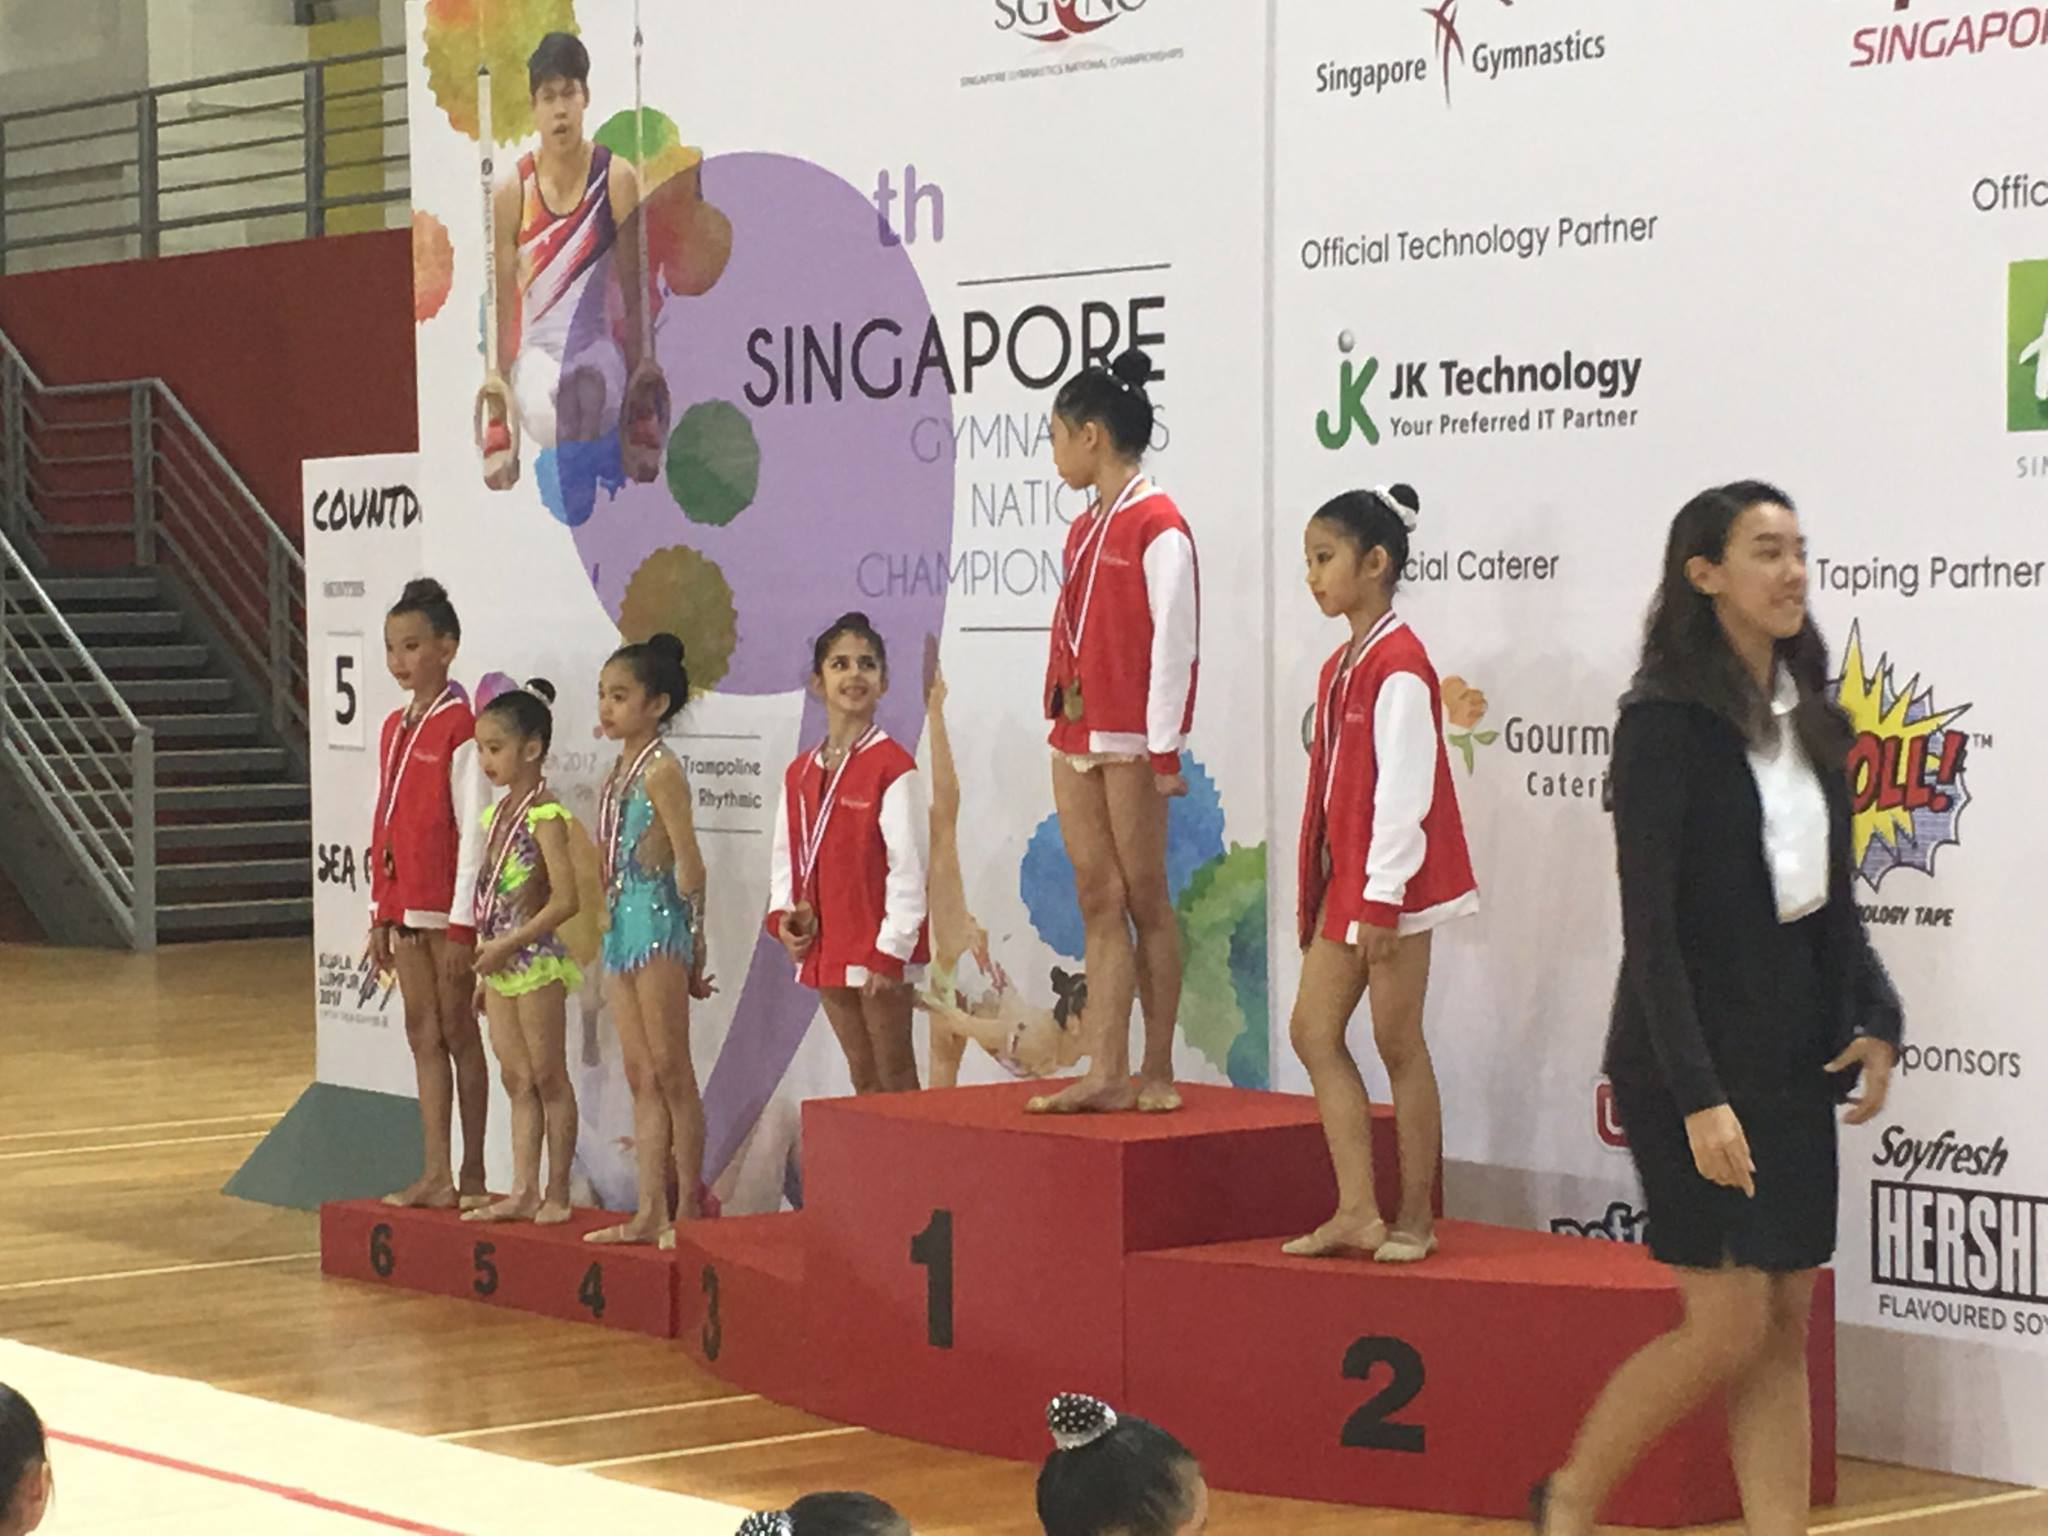 9th Singapore Gymnastics National Championships 2017 1